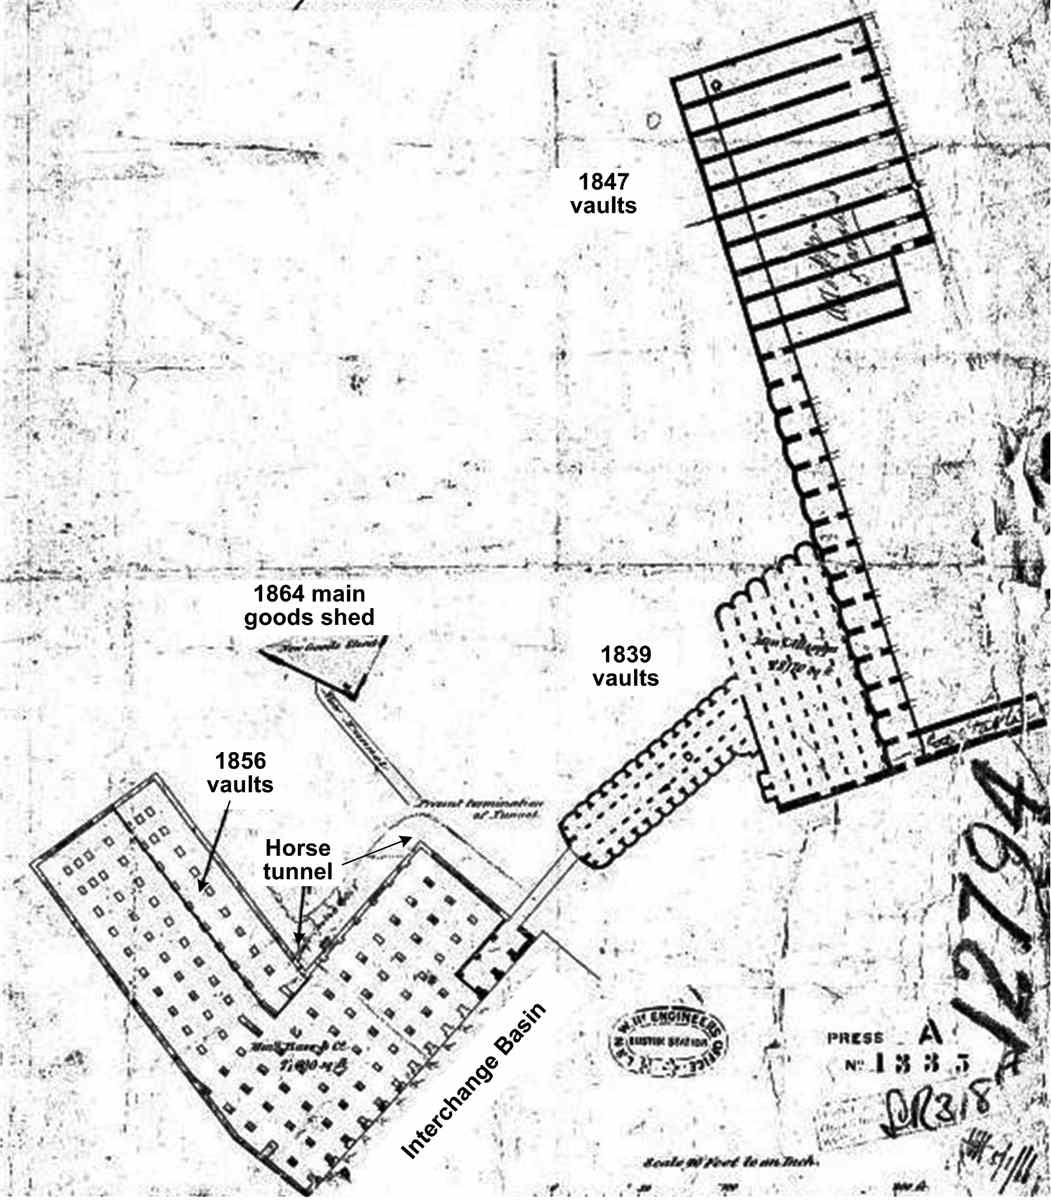 [Image of 1866 plan showing connection of 1854-6 vaults to 1839 vaults, to 1864 goods shed and to Eastern Horse Tunnel]